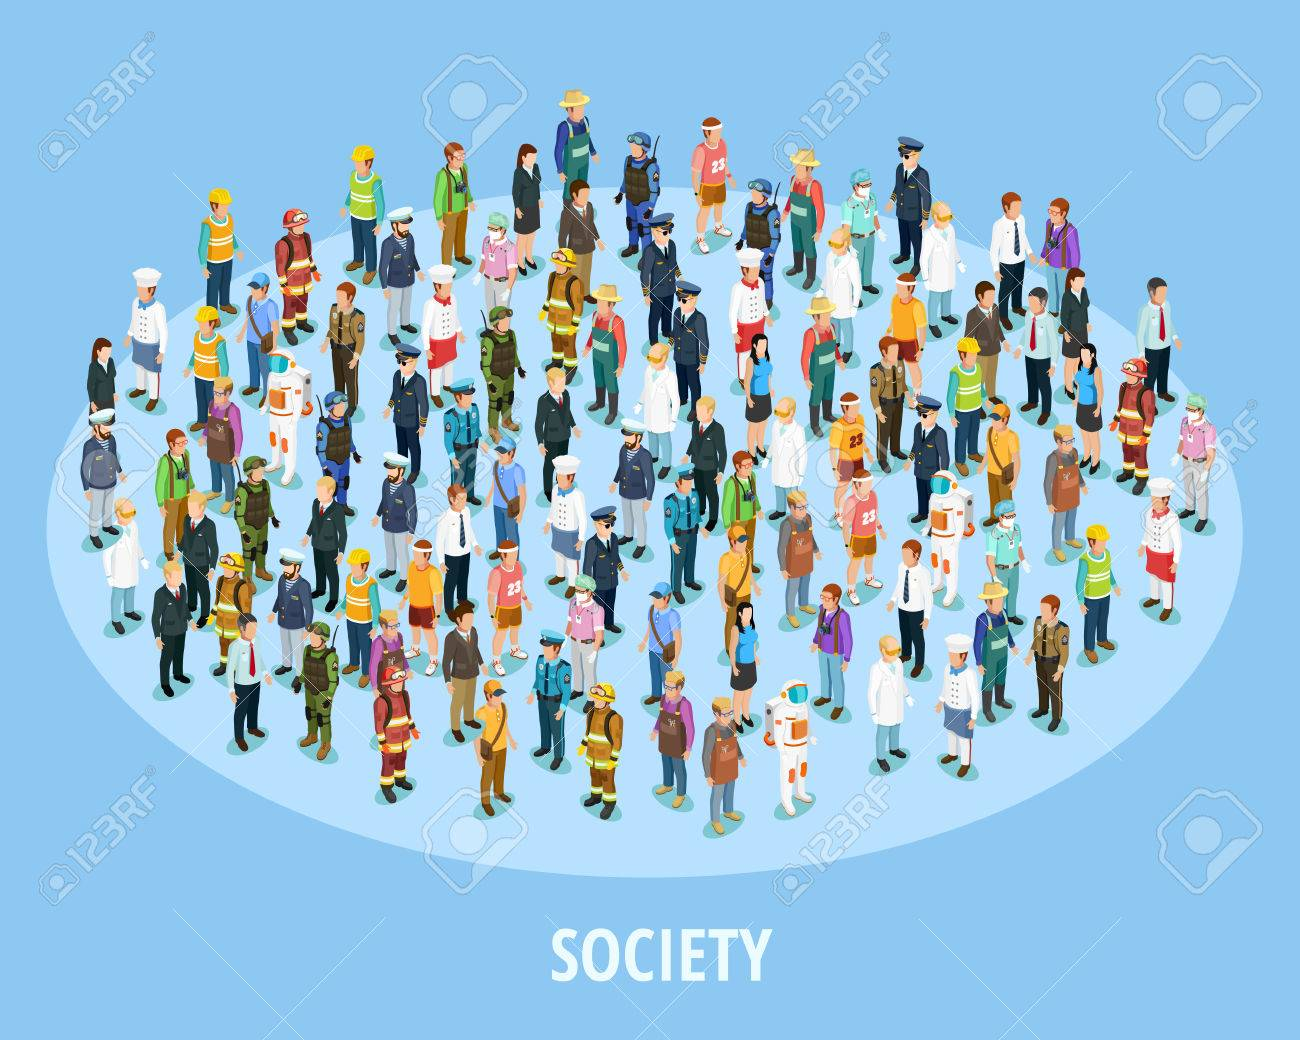 professional society isometric background with people of different